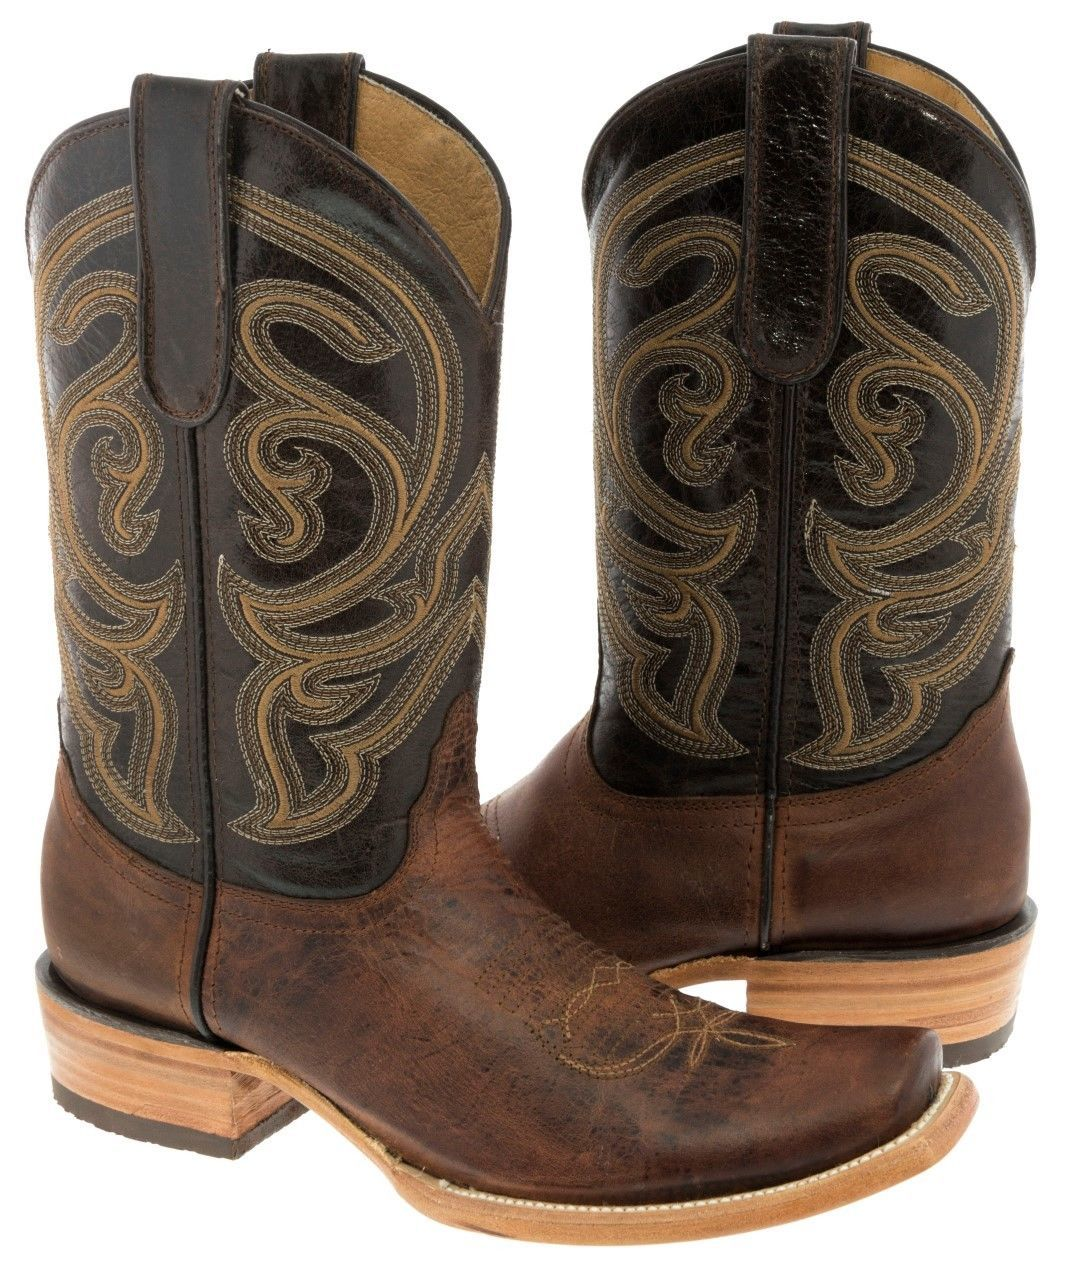 08d61ab21d6 Mens Dark Chedron Smooth Leather Cowboy and 31 similar items